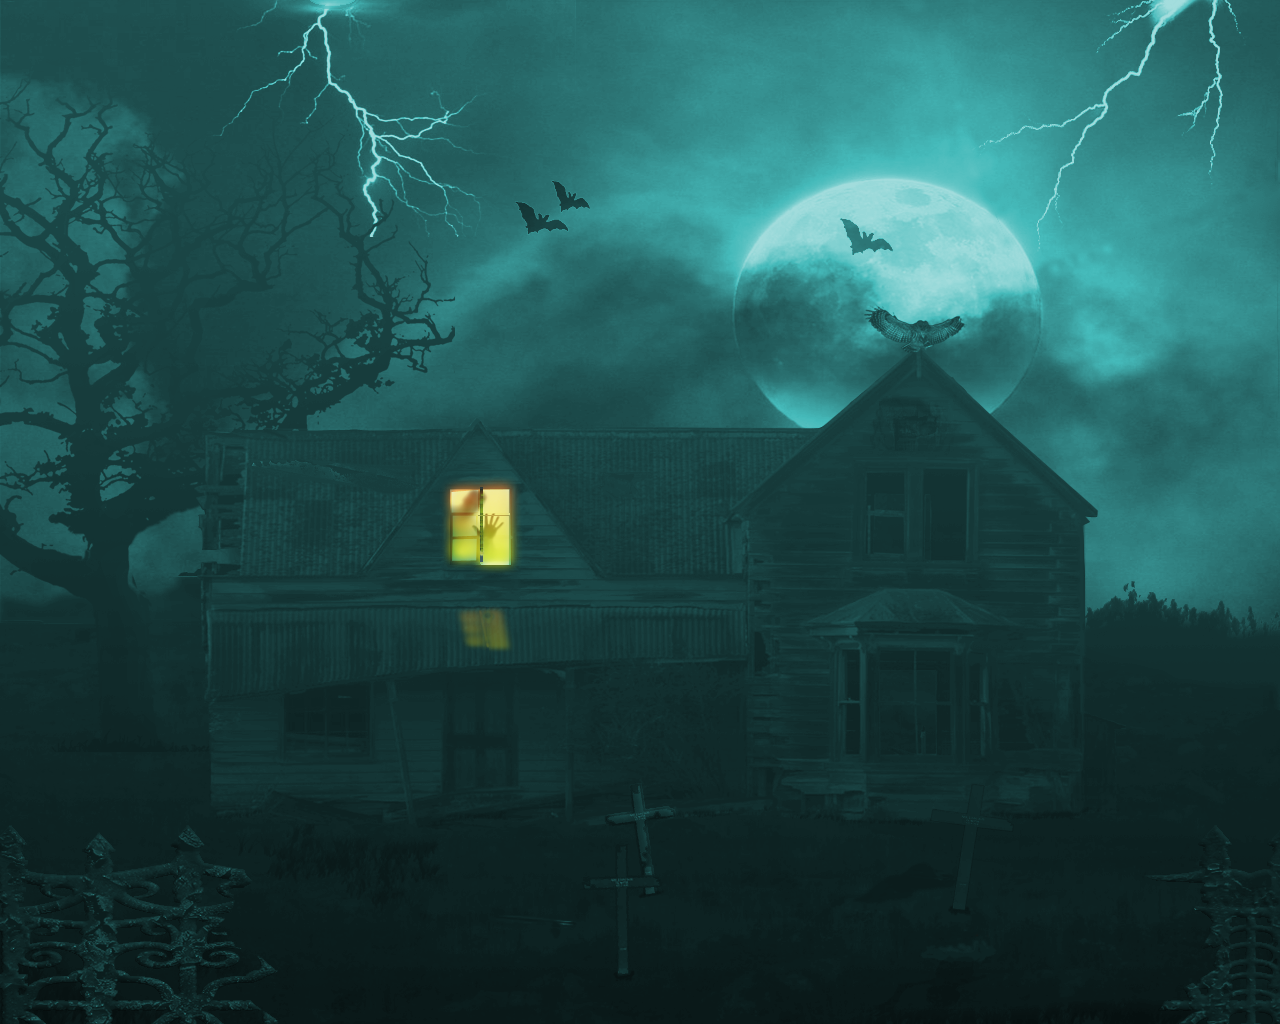 Haunted House Wallpaper Animated Haunted house wallpaper 1280x1024